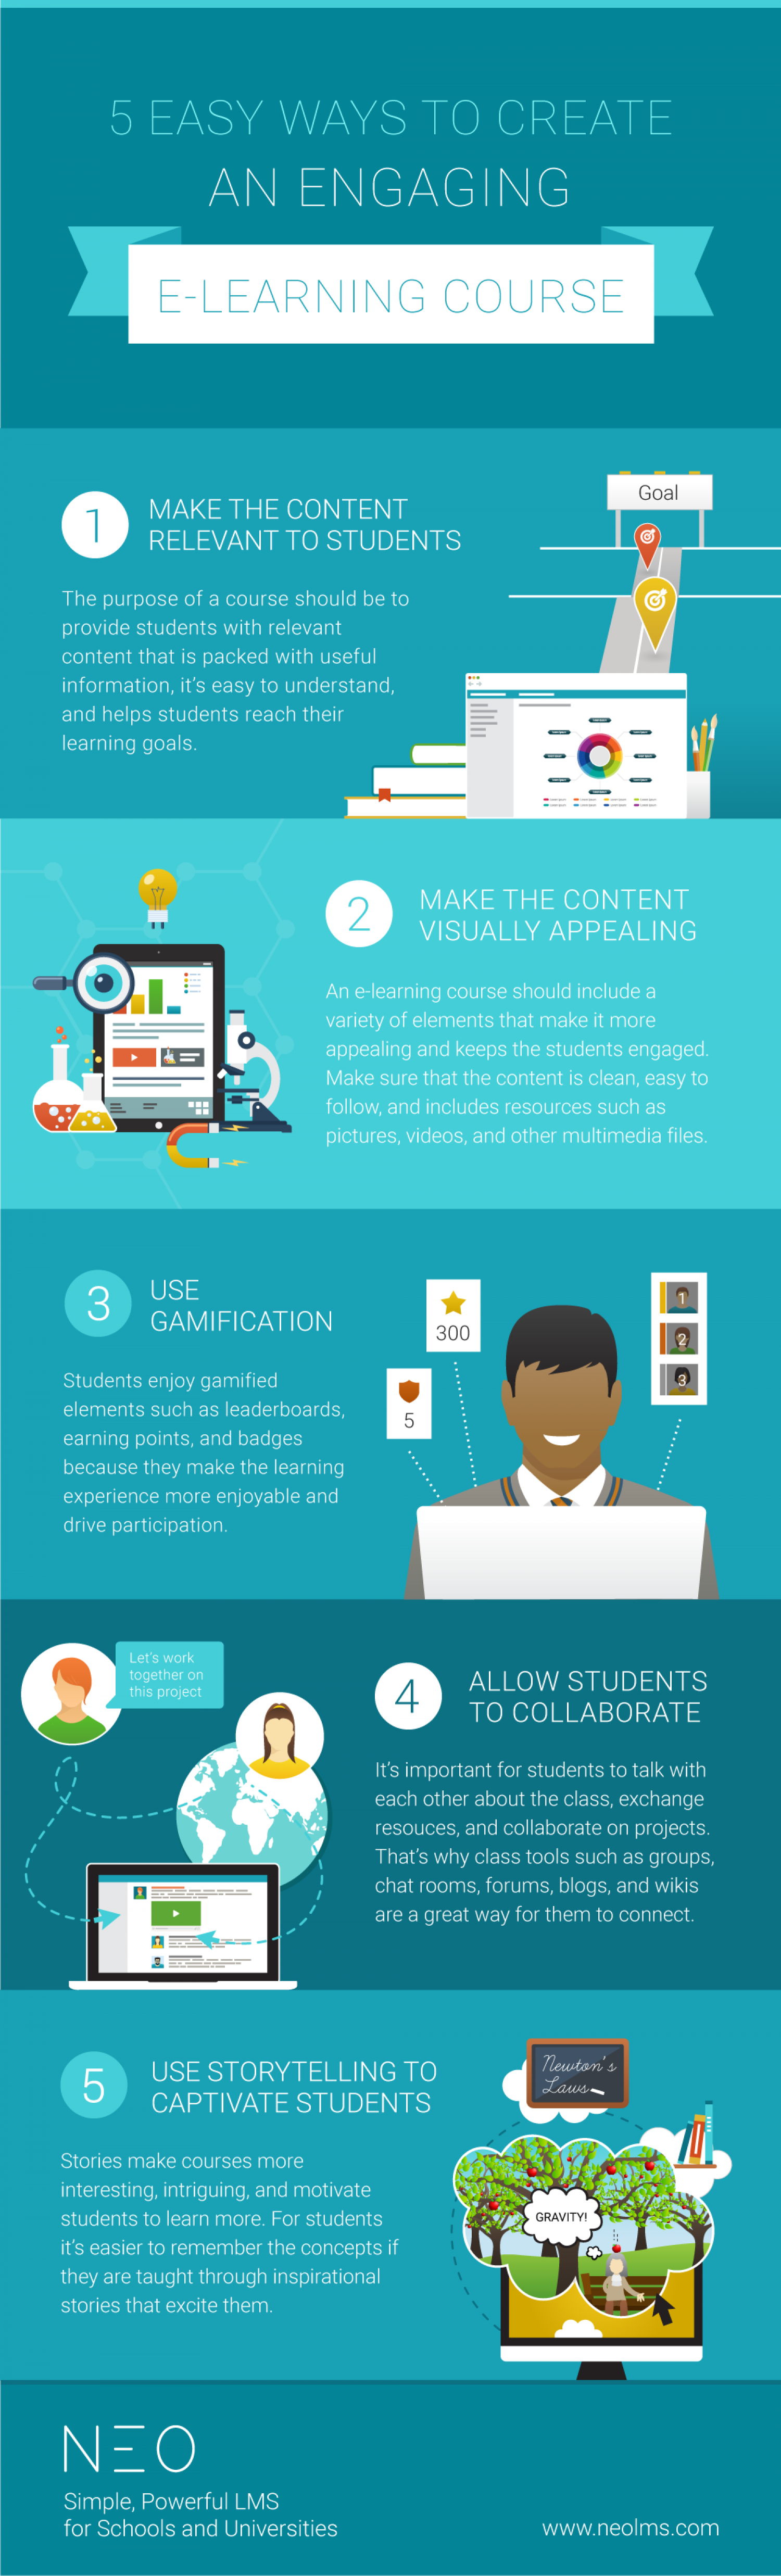 5 easy ways to create an engaging e-learning course Infographic